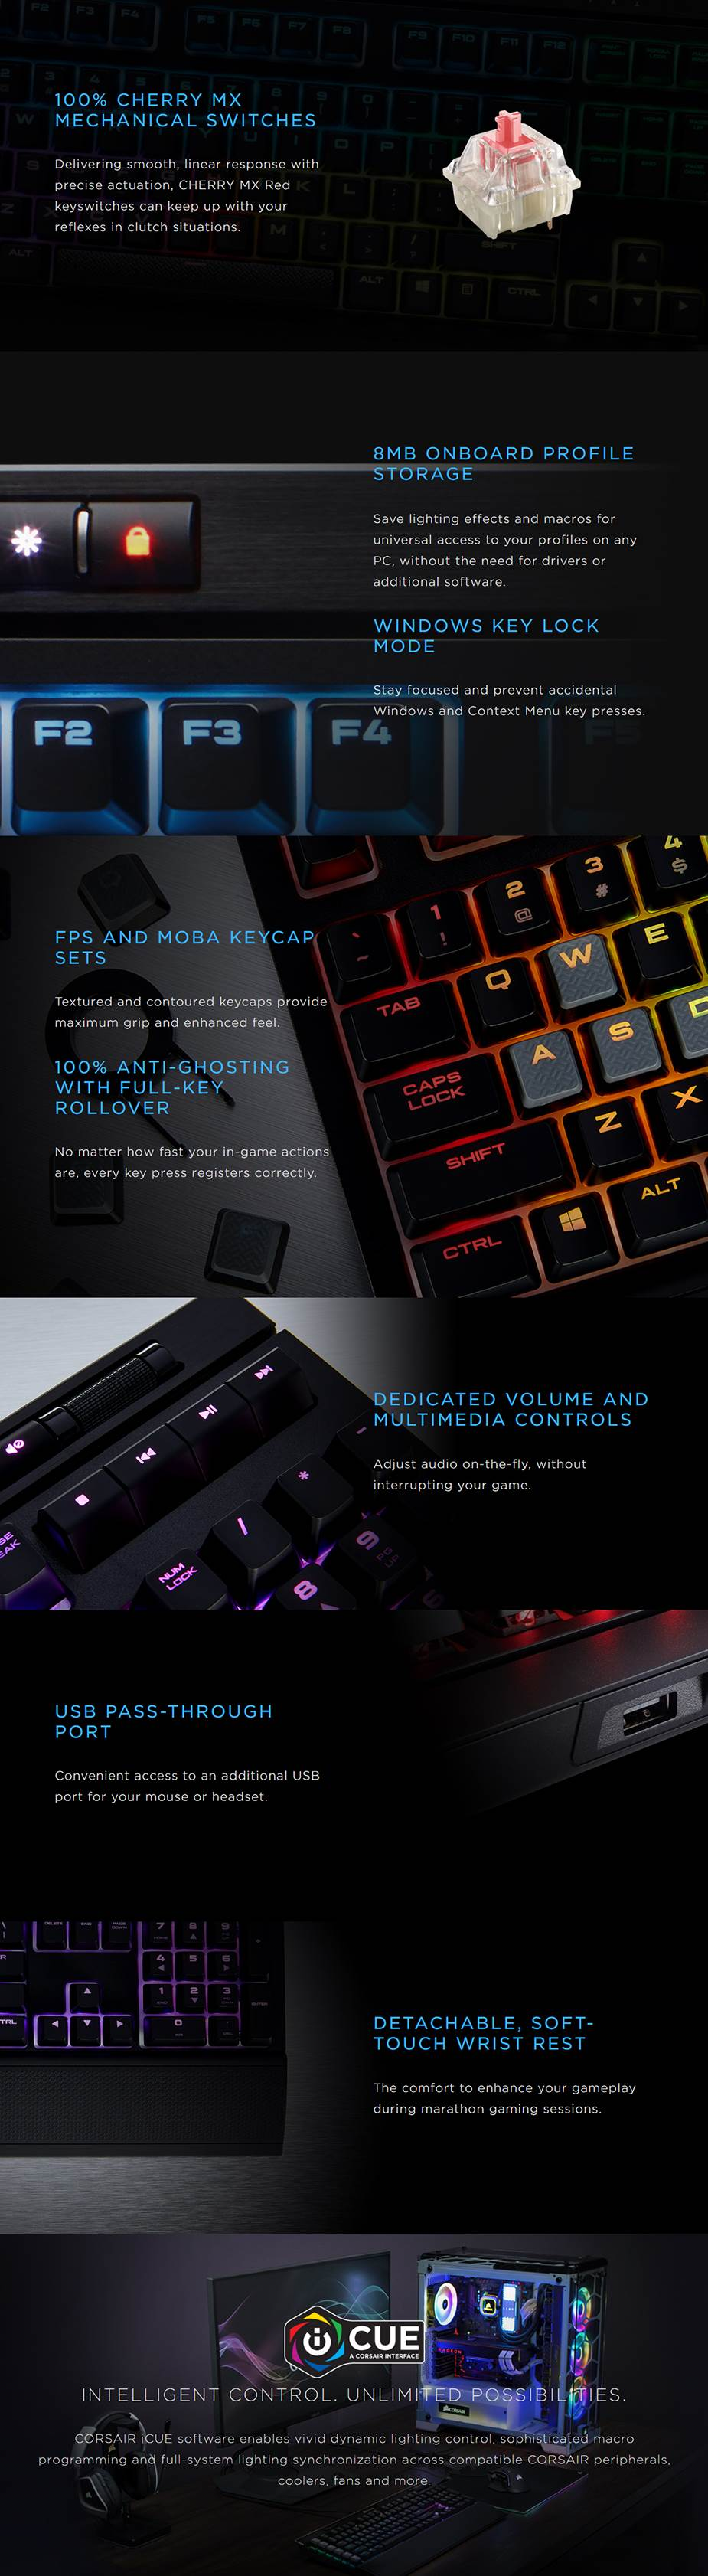 Corsair Gaming Strafe RGB MK.2 Mechanical Gaming Keyboard - Cherry MX Red - Desktop Overview 1